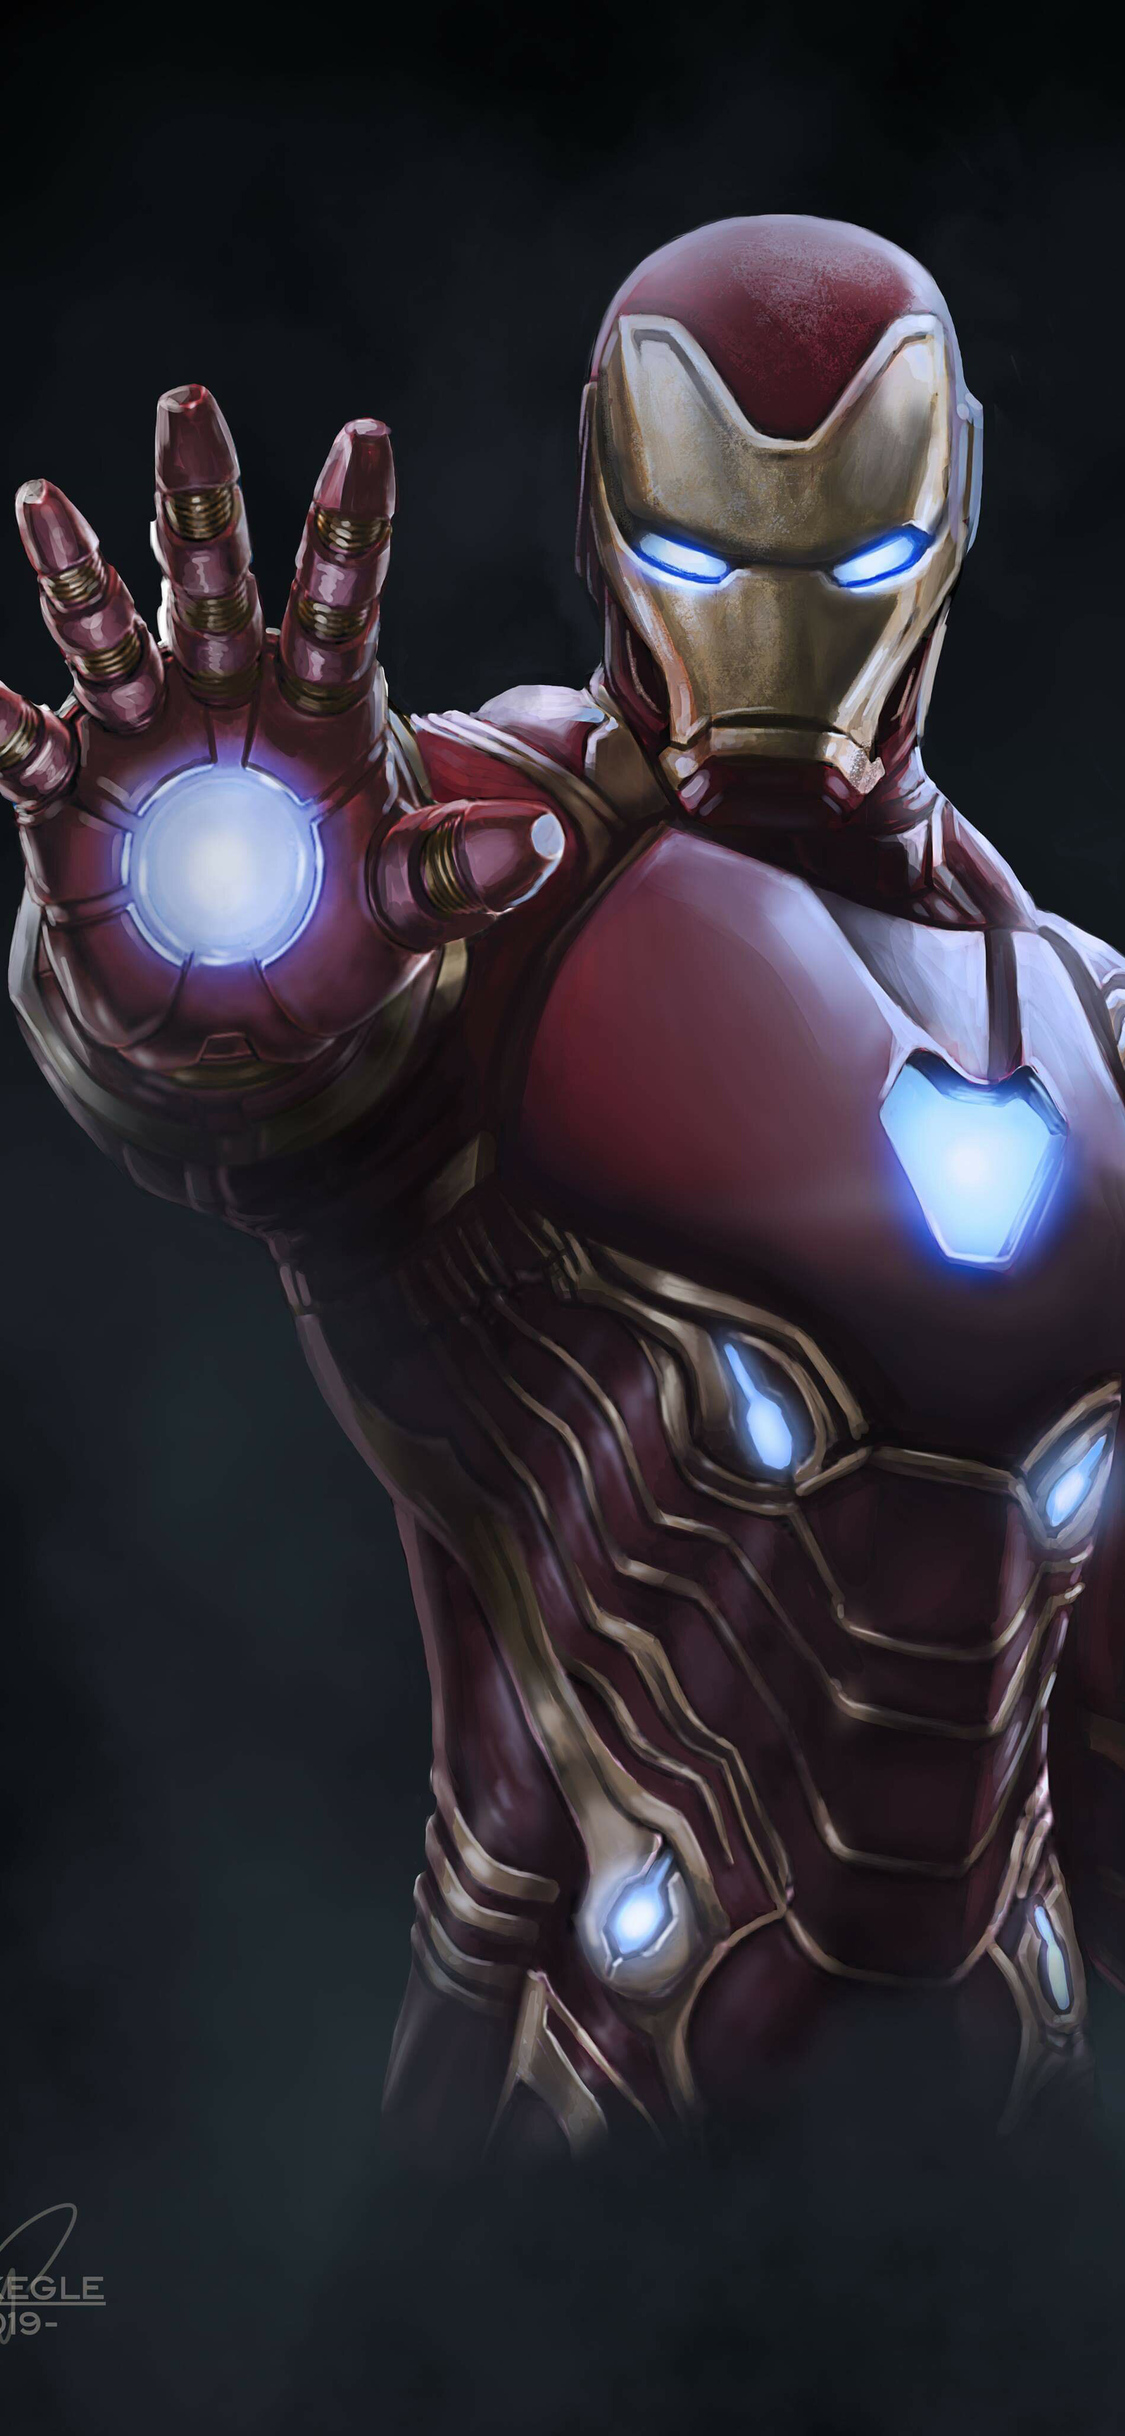 Best Of Iron Man Wallpaper Hd 4k Iphone Pictures